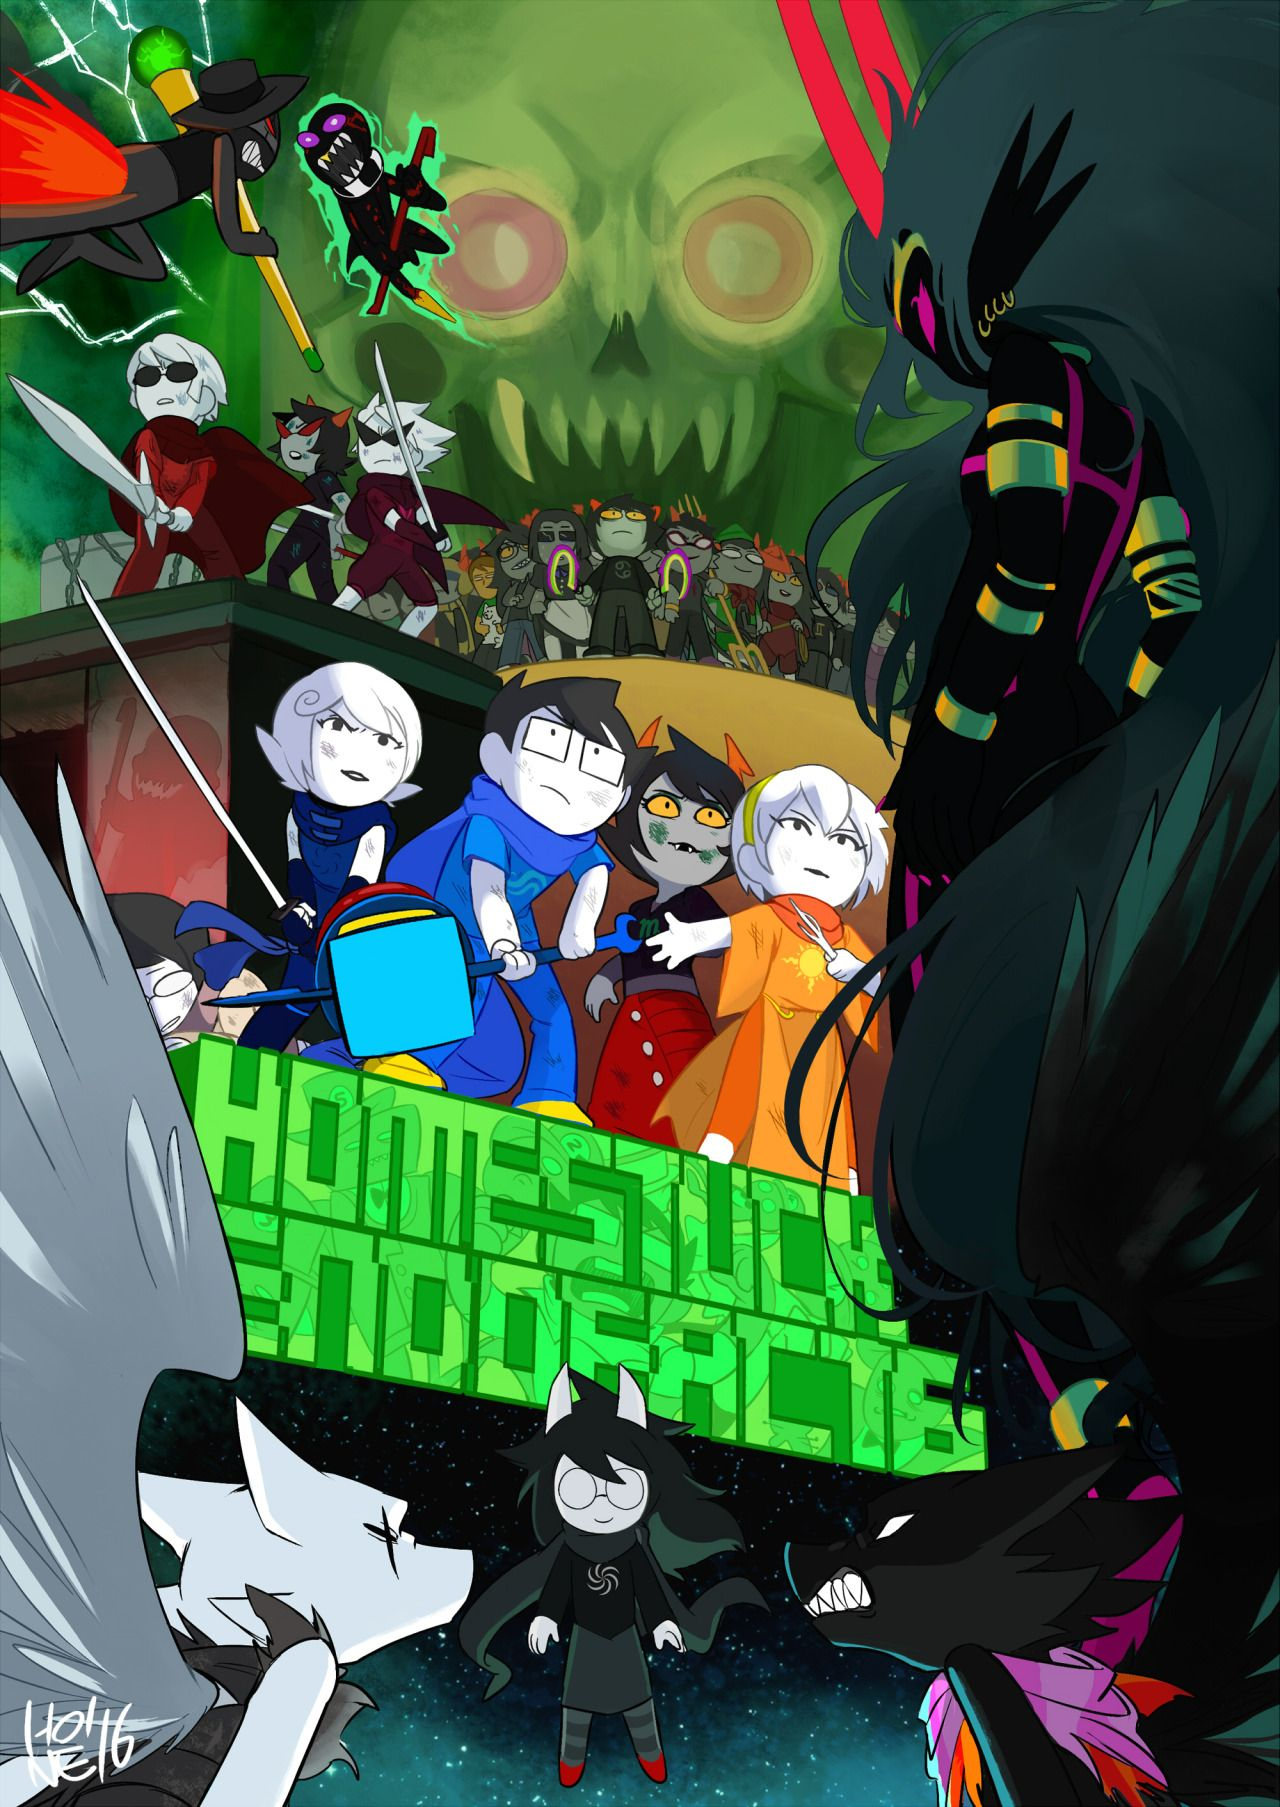 I did part of last shots for homestuck end of act